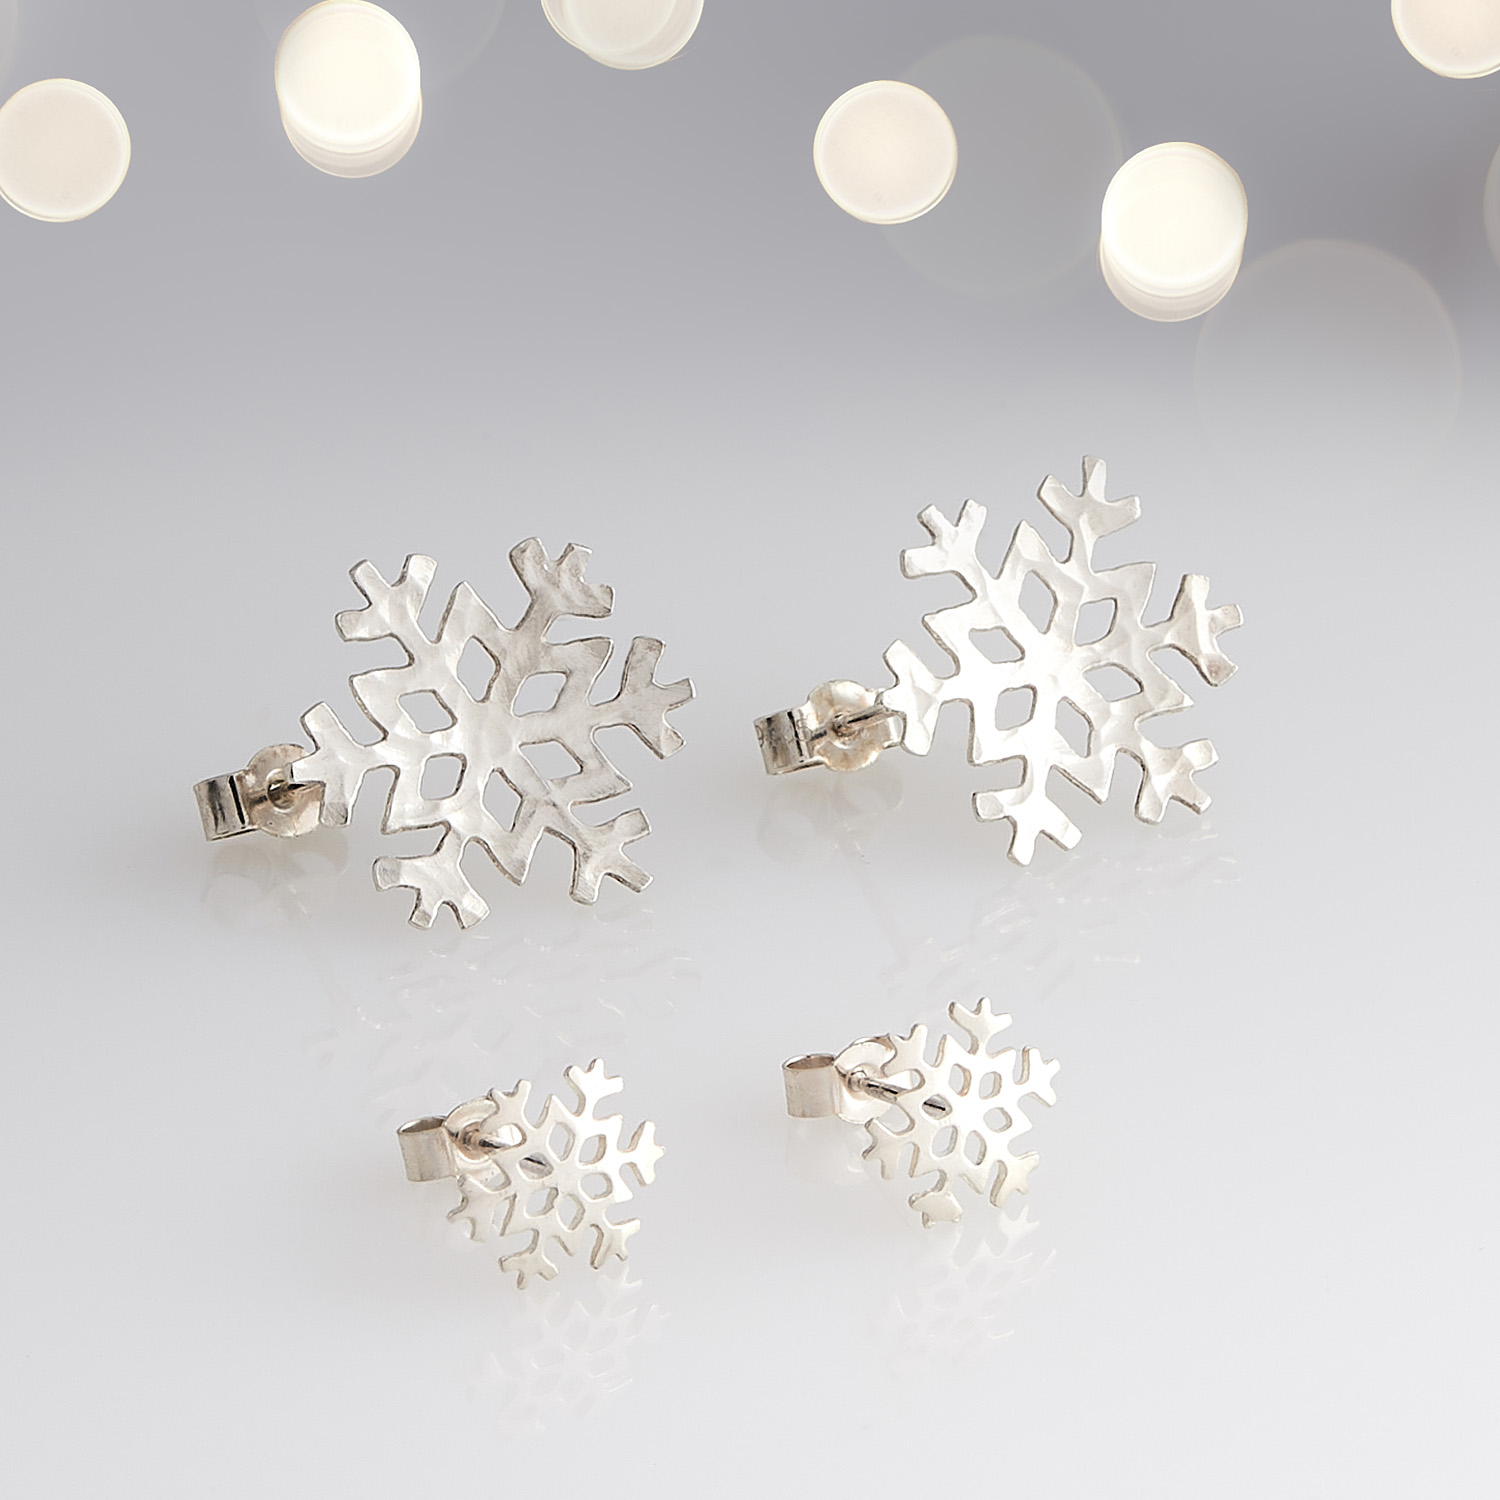 Product image of cufflinks handmade from silver and styled in the appearance of snowflakes